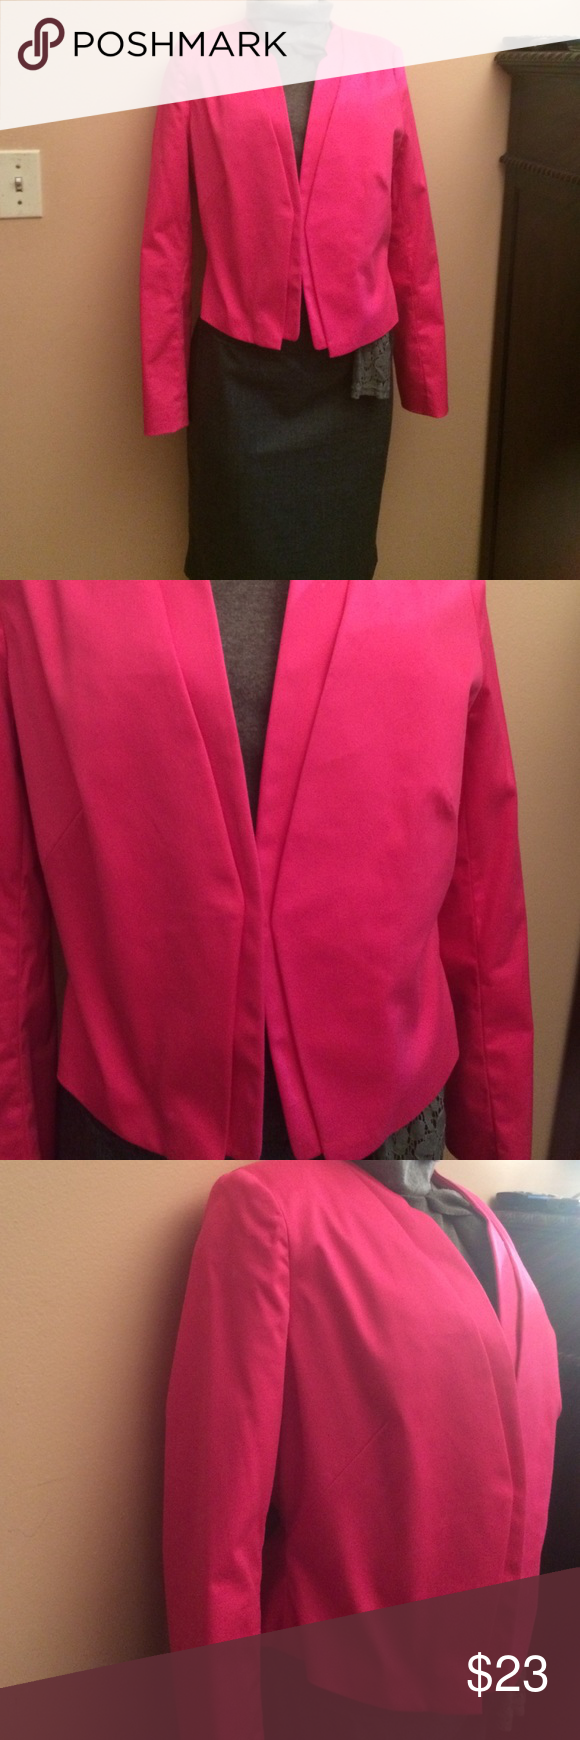 Hot pink blazer Very fitted blazer great with pants skirts and jeans. Brand new without tags. Worthington Other